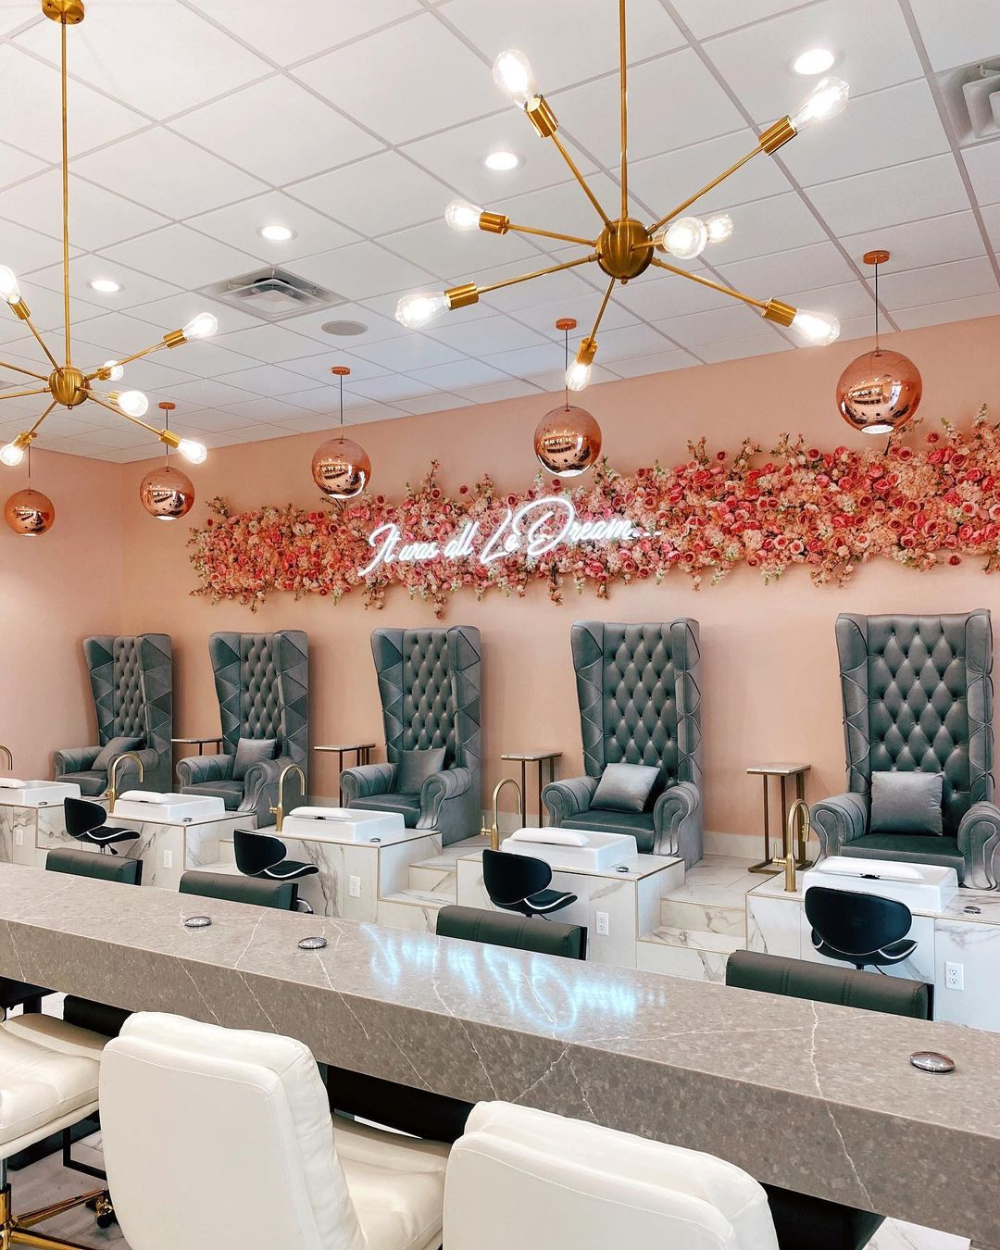 Jax Events Powered By Unation Stufftodoinjacksonville Instagram Photos And Videos Nail Salon And Spa Decor Home Decor